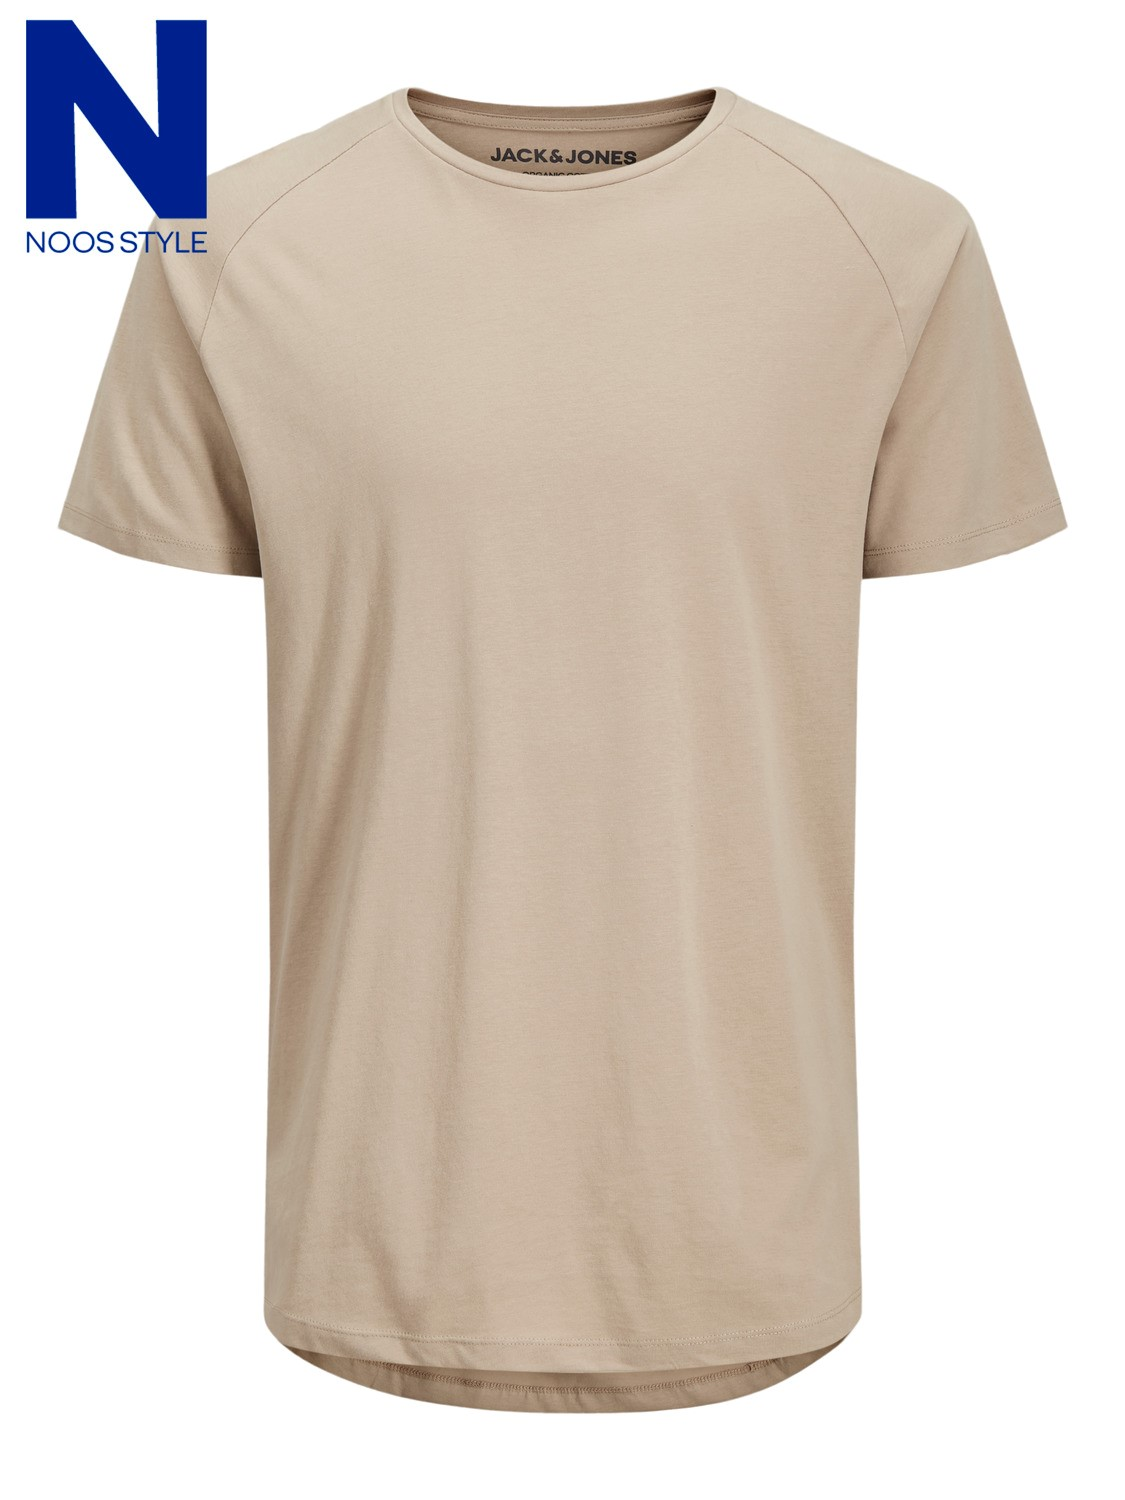 J&J T-Shirt Curved in 3 Farben